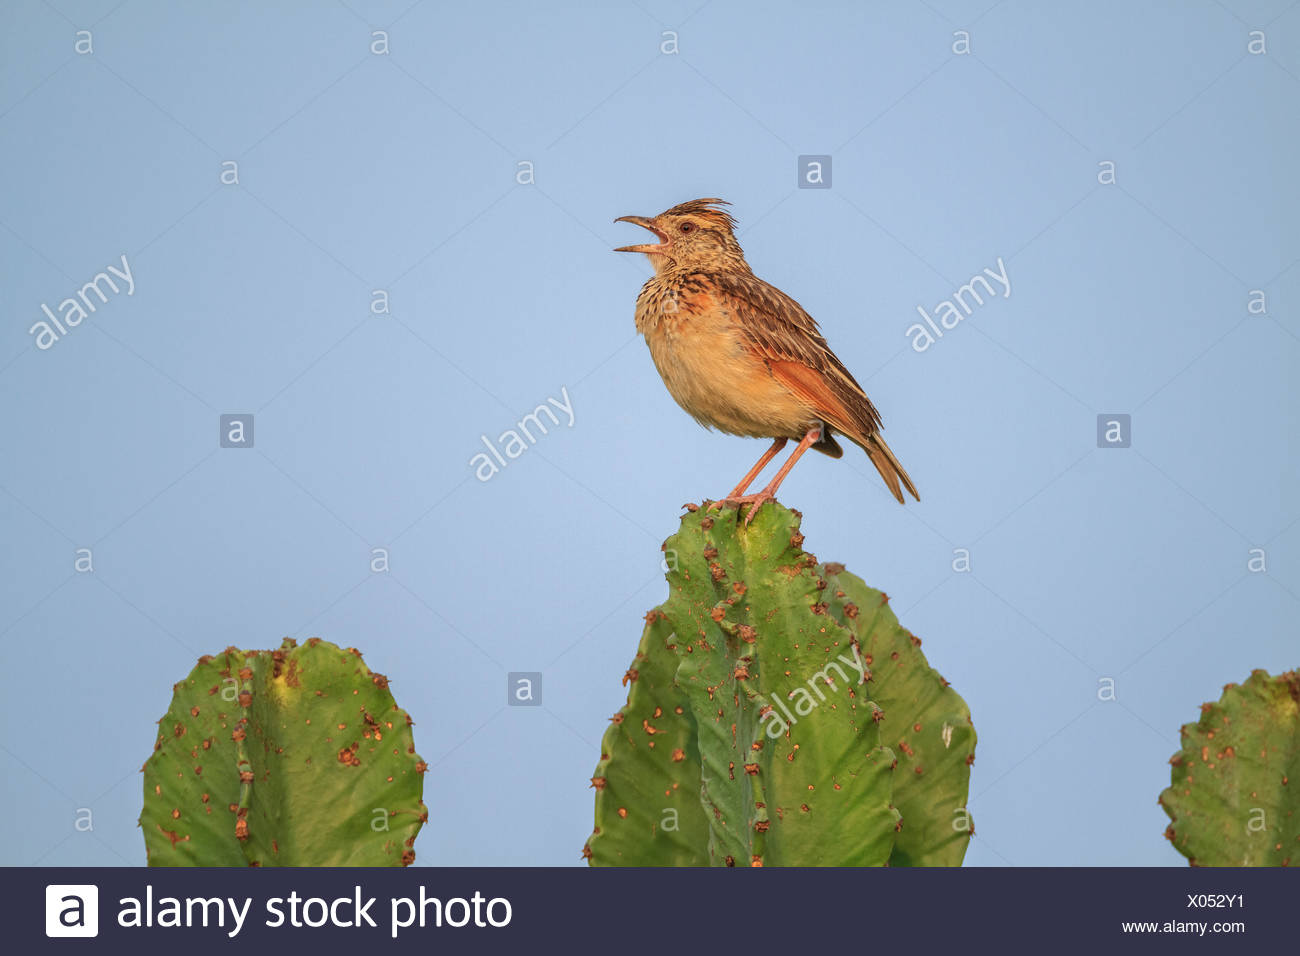 A rufous-naped lark, Mirafra africana, perching on a succulent plant. Stock Photo